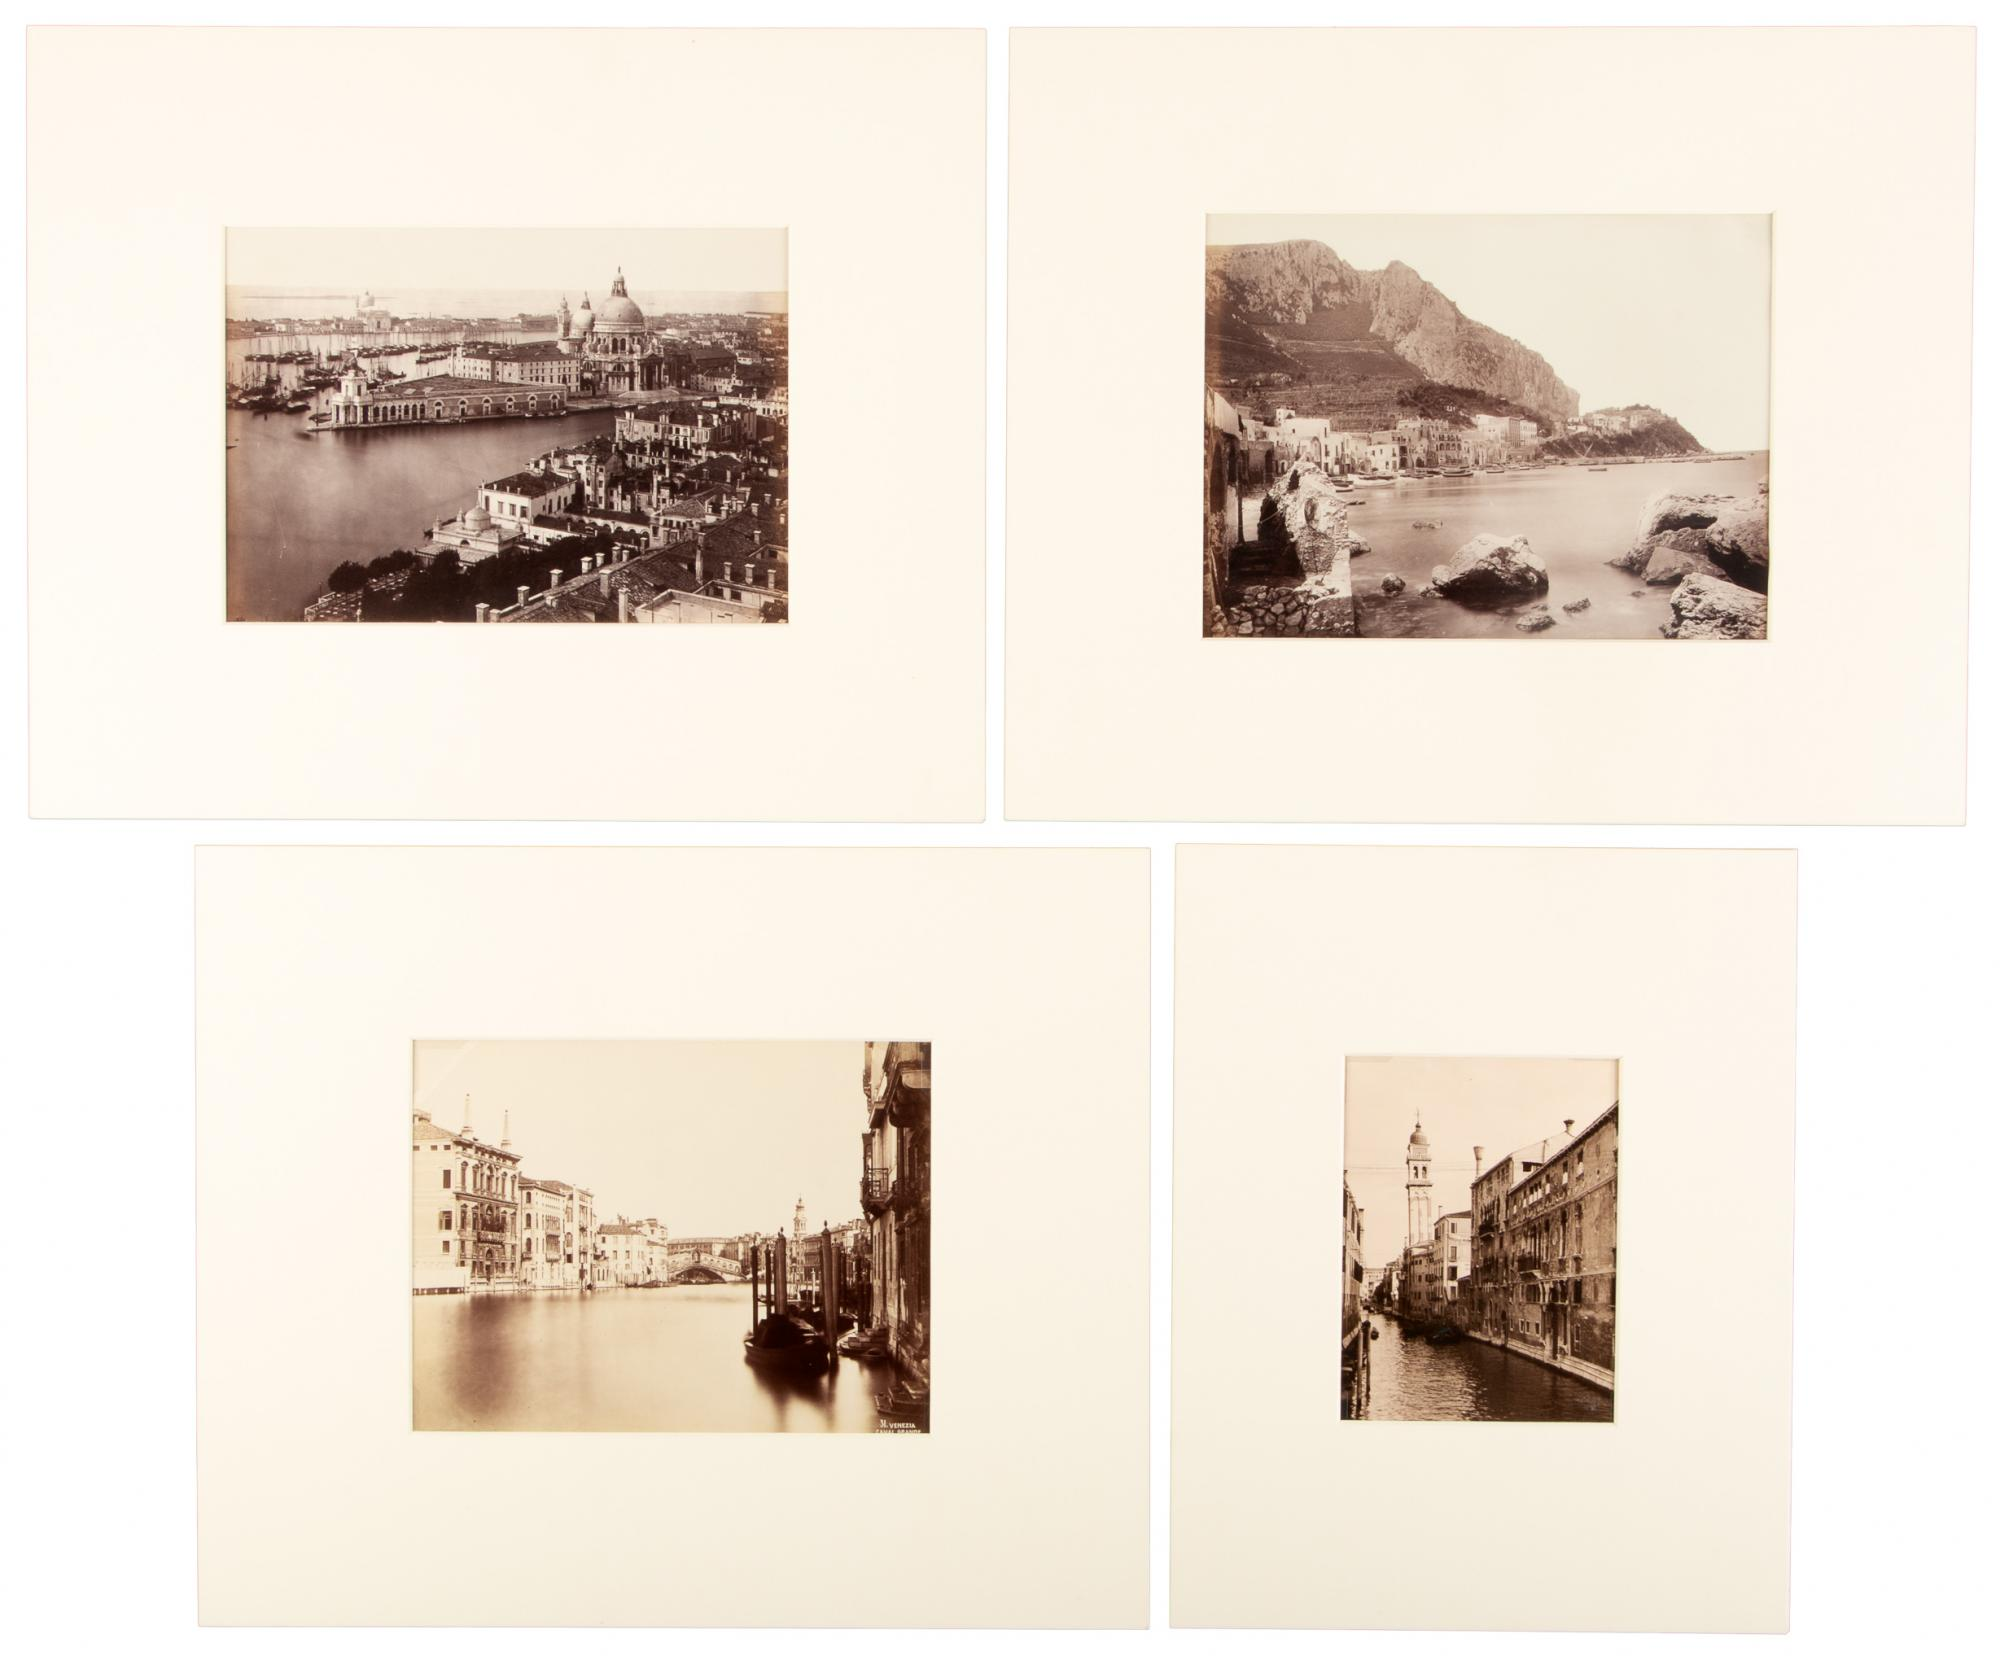 Four views of turn of the century Venice and Naples